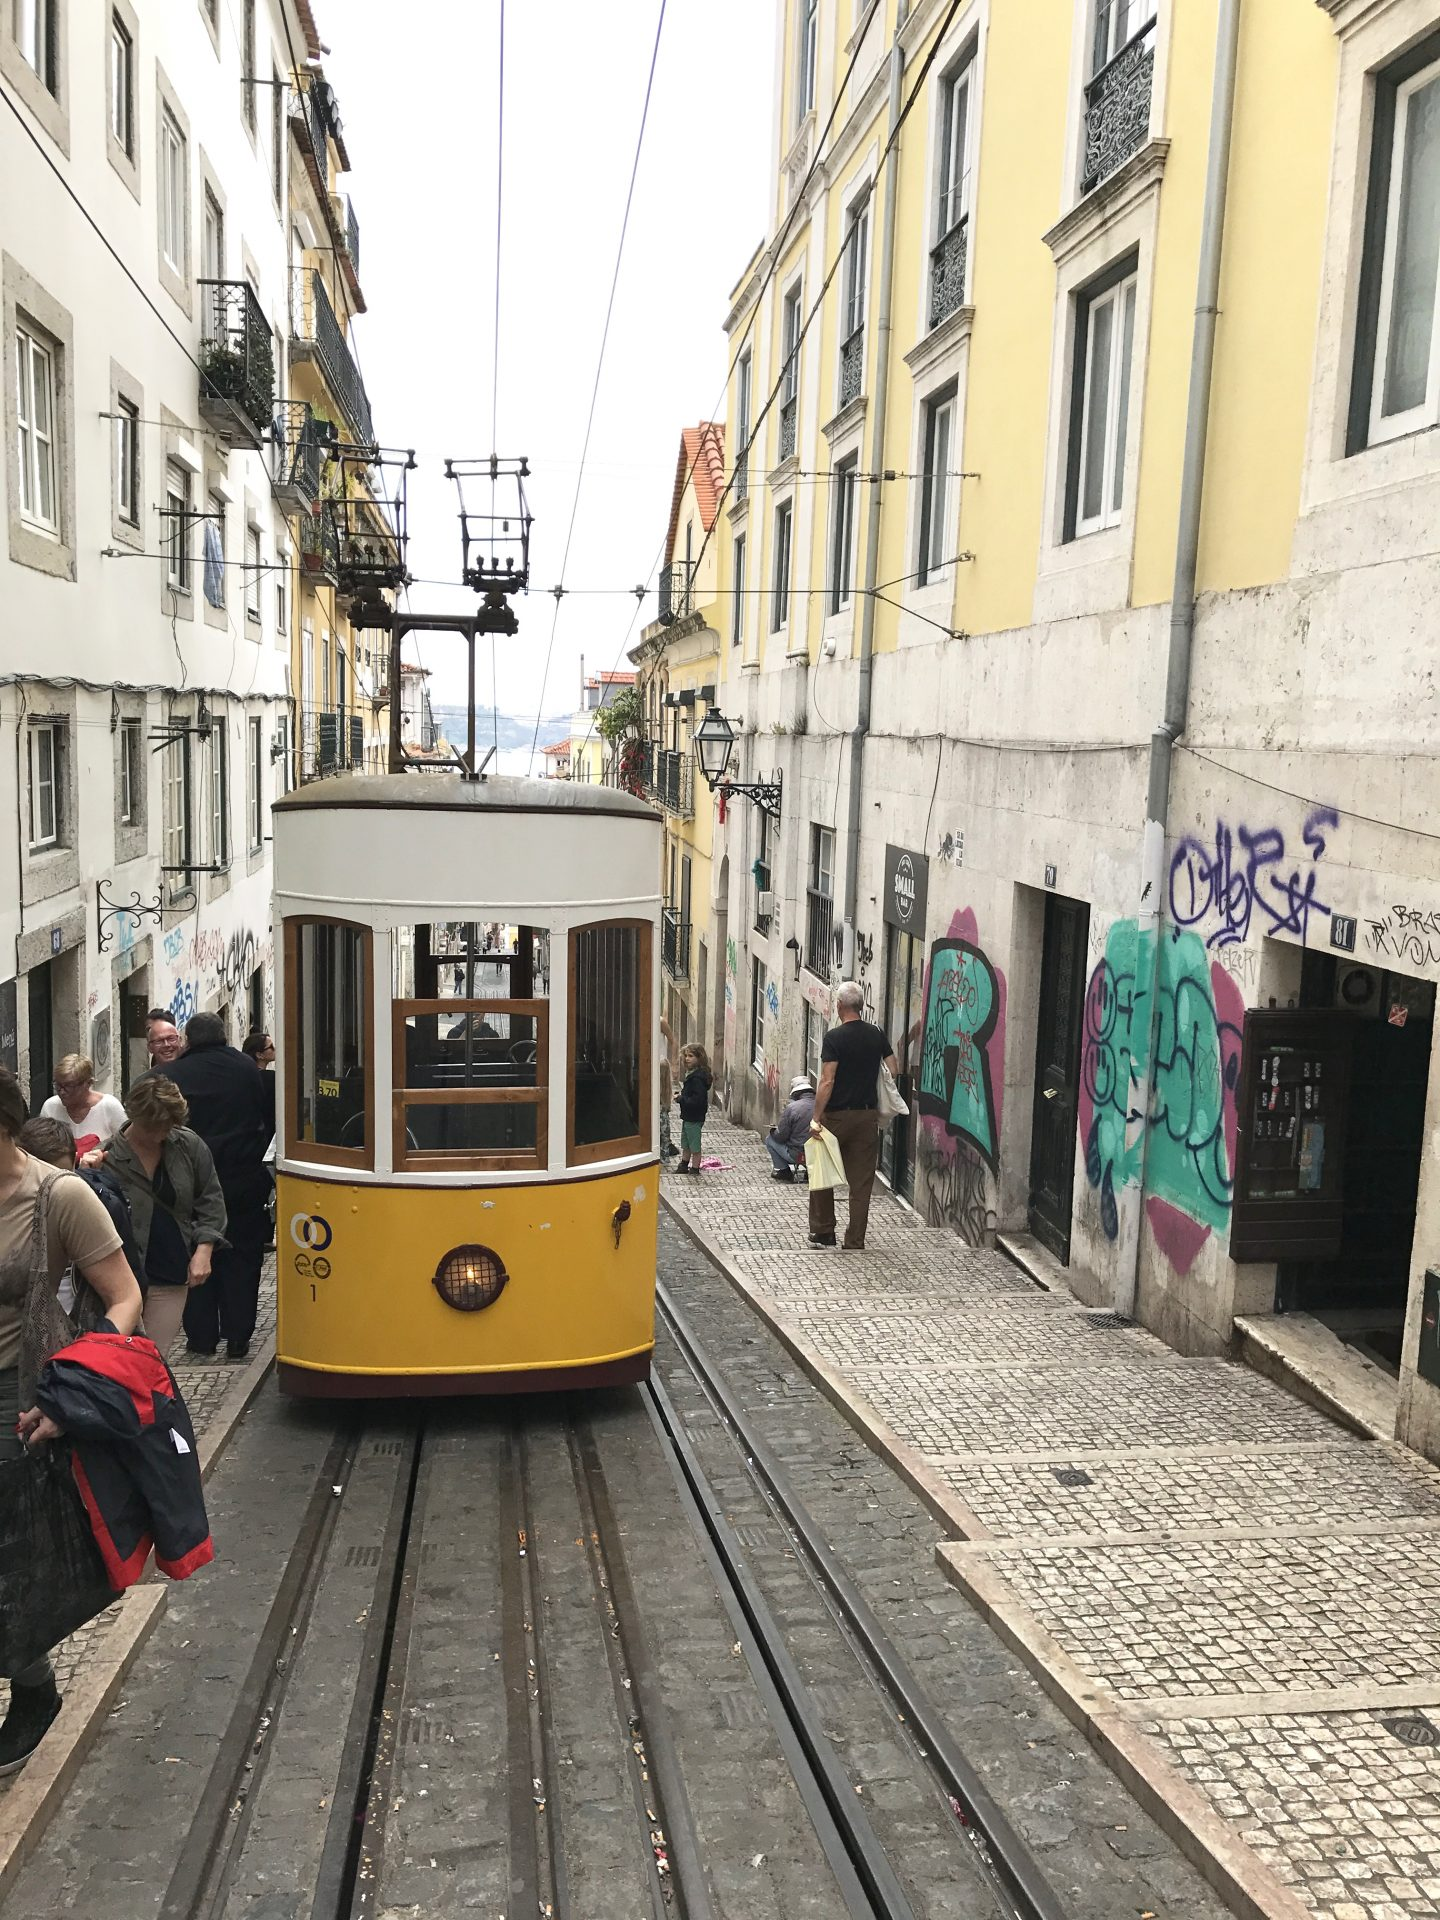 The lisbon guide 2 - ByMeryl